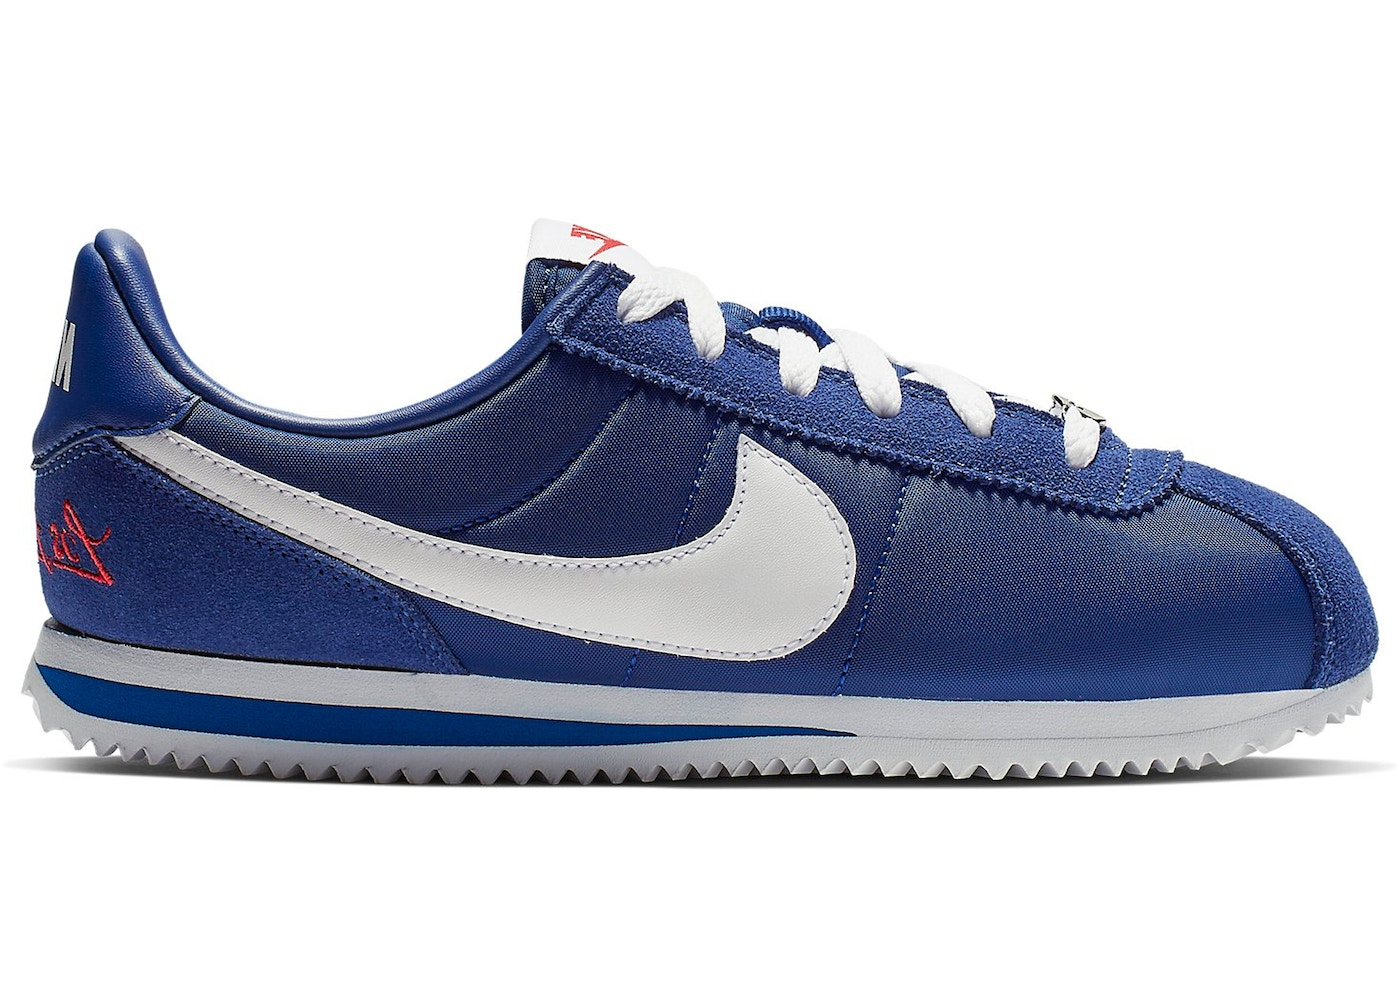 Cortez Angeles Blue gs Los Nike defdedacdeffd|Inspirational Football Quotes From The Gridiron